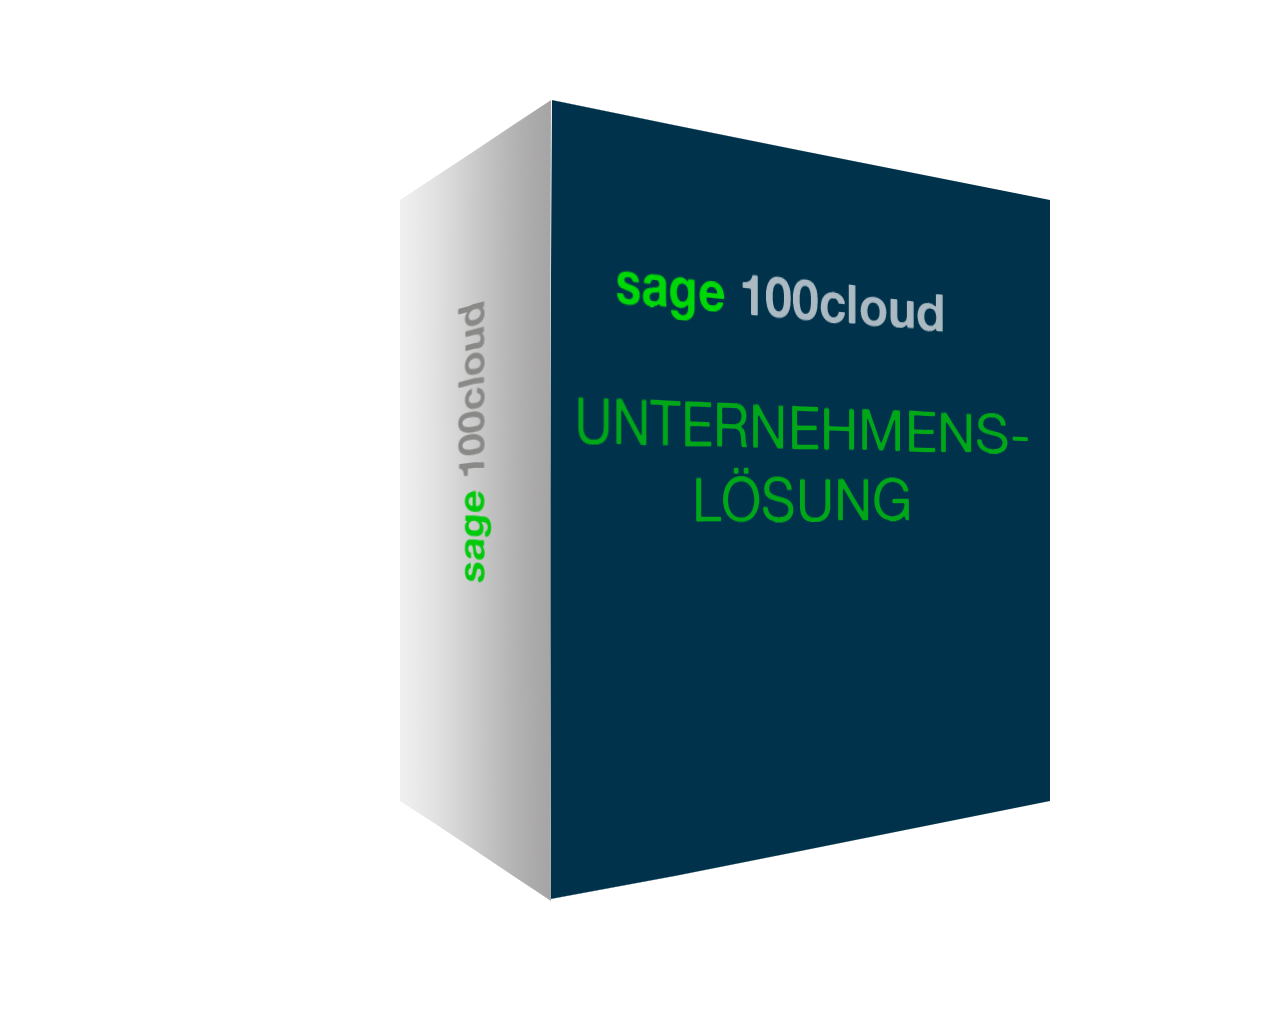 brainsolution Software AG - Sage 100cloud